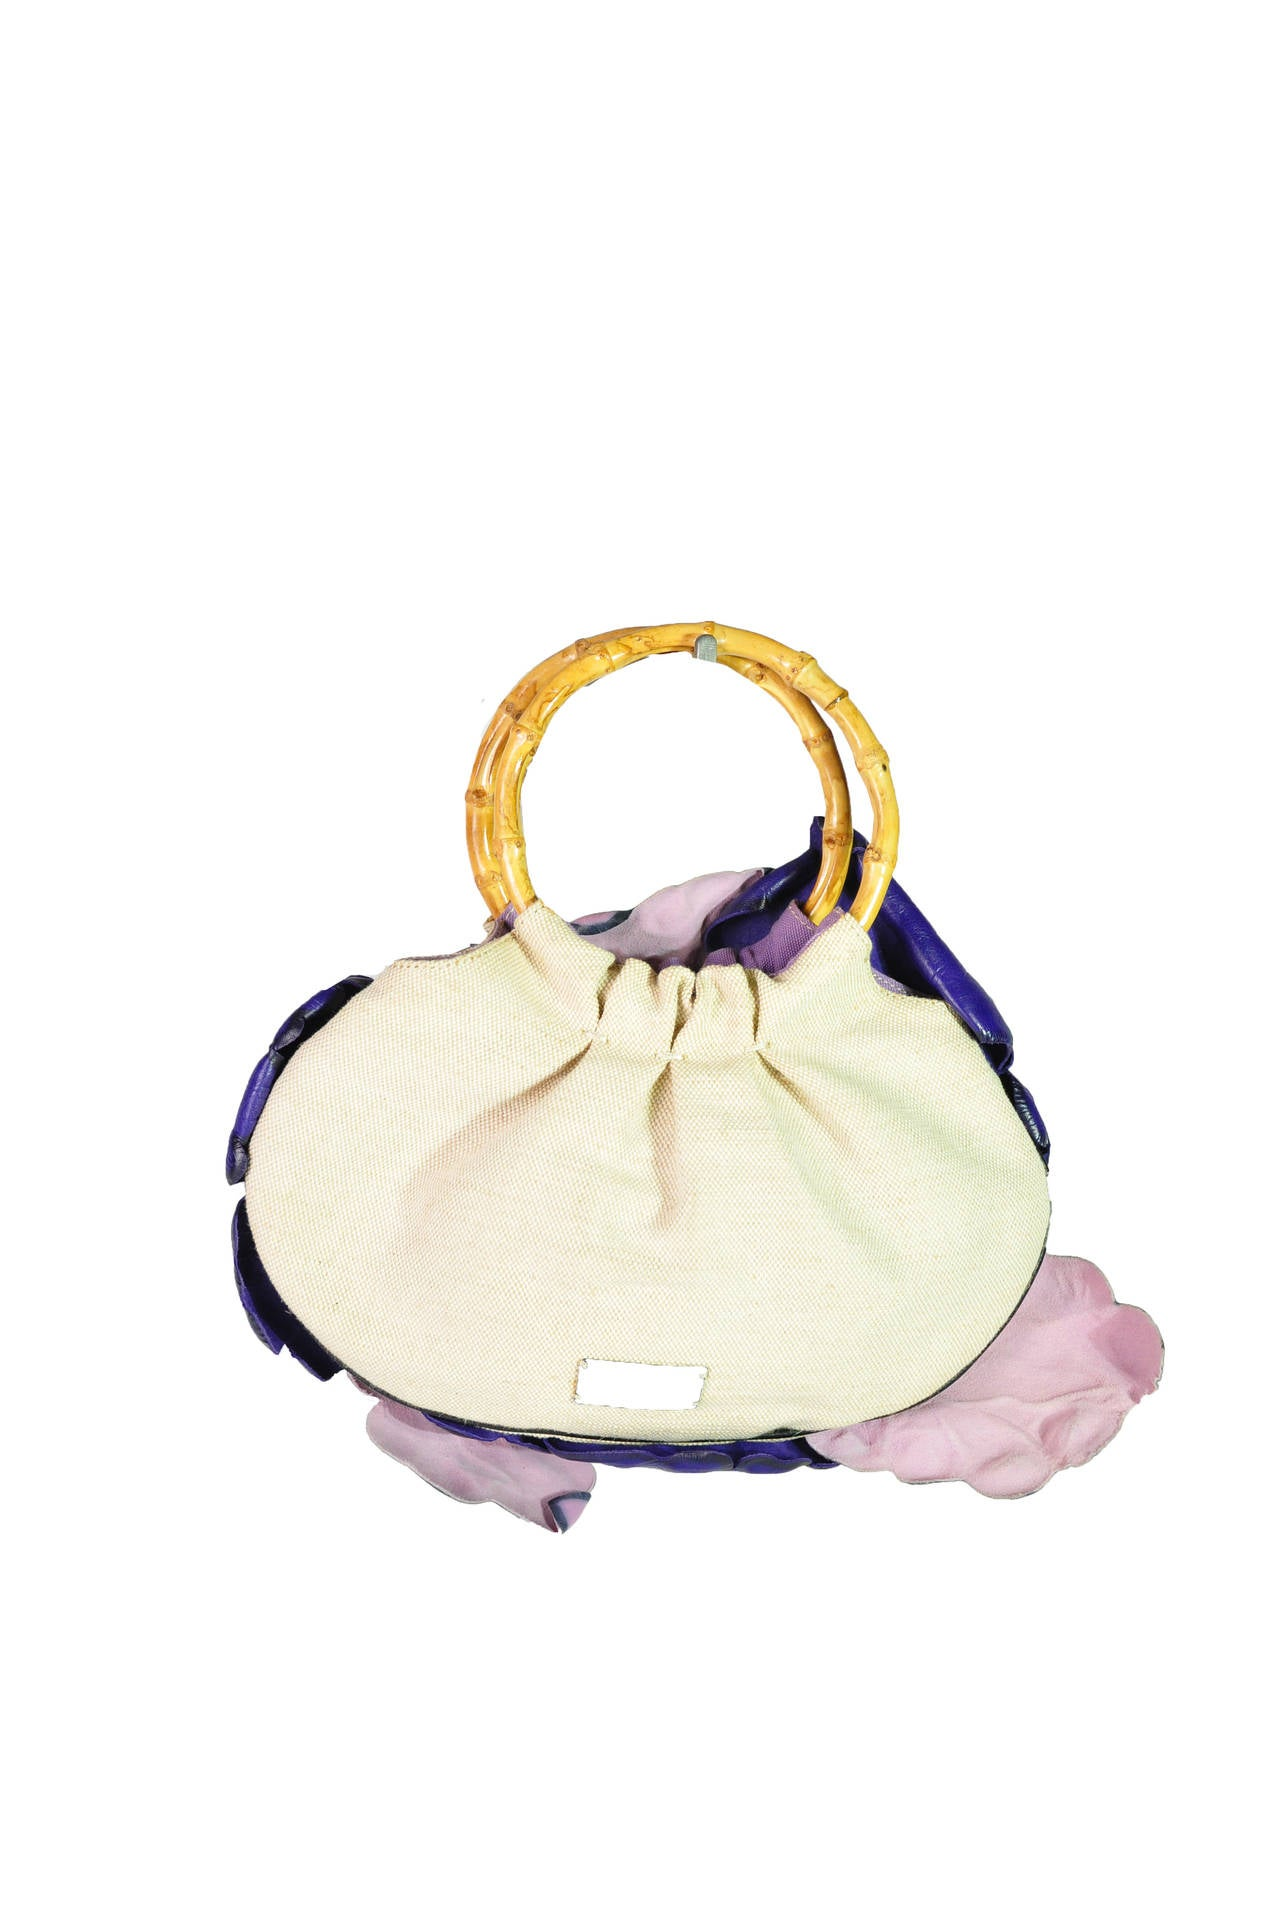 A very unique and rare Moschino mini canvas bag with double bamboo handles at top features with three large appliqued leather flowers in violet and pink colored leaves on front.  Fully lined in fabric with a zip interior pocket.